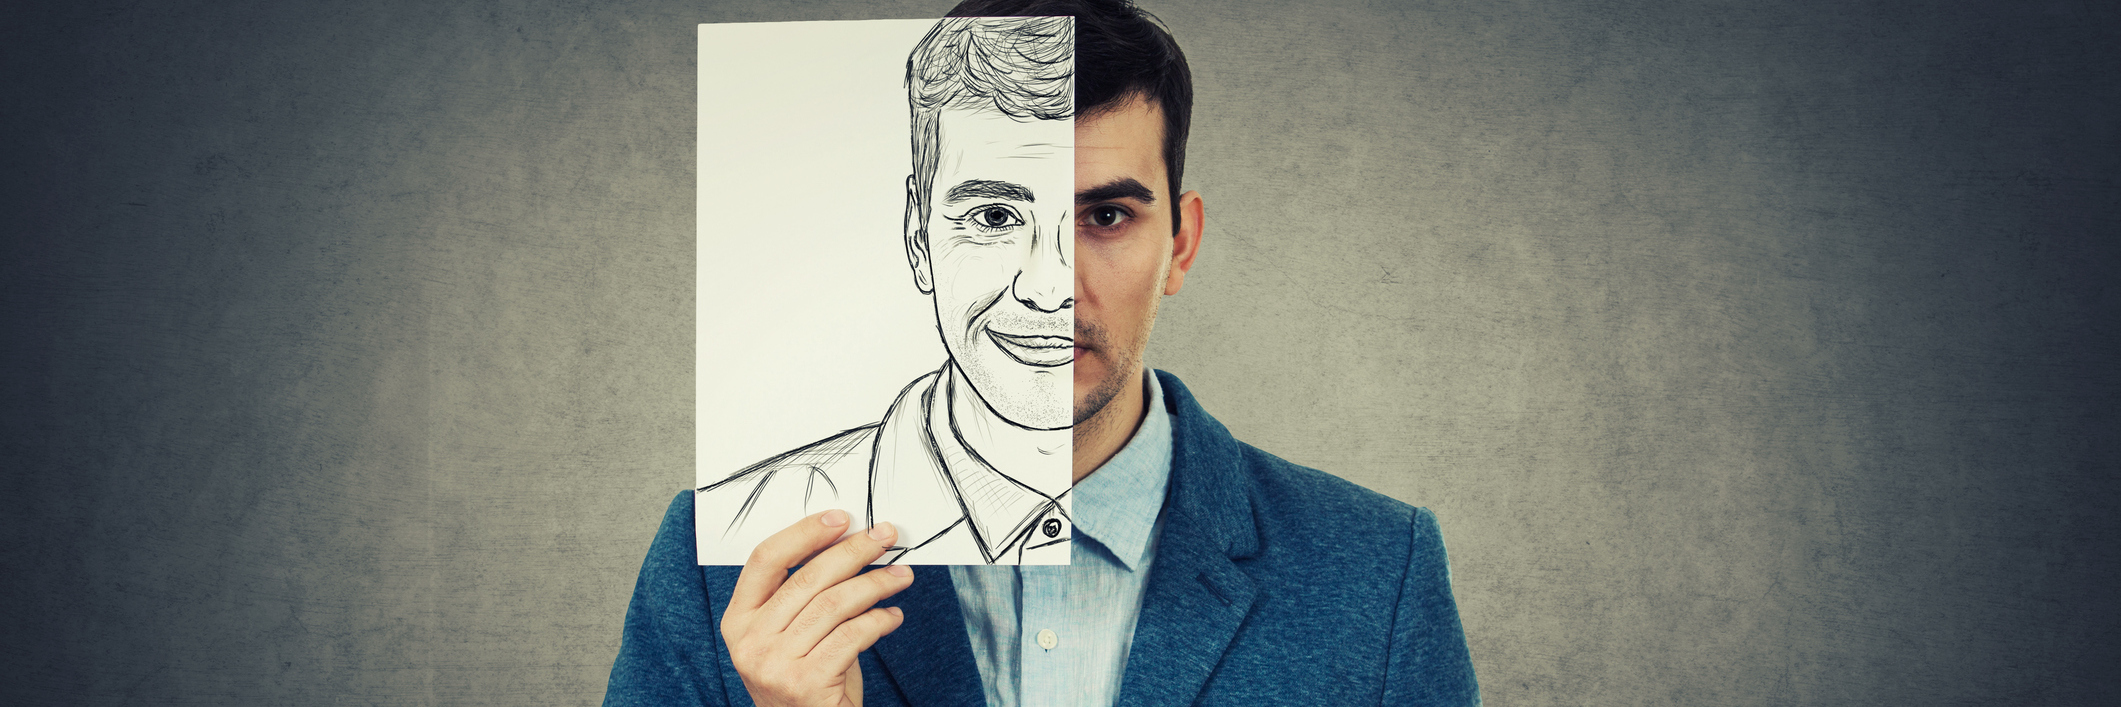 Portrait of a sad businessman hiding half his face using a white paper drawn with a fake happy emotion. Mask for hiding the real face expression.